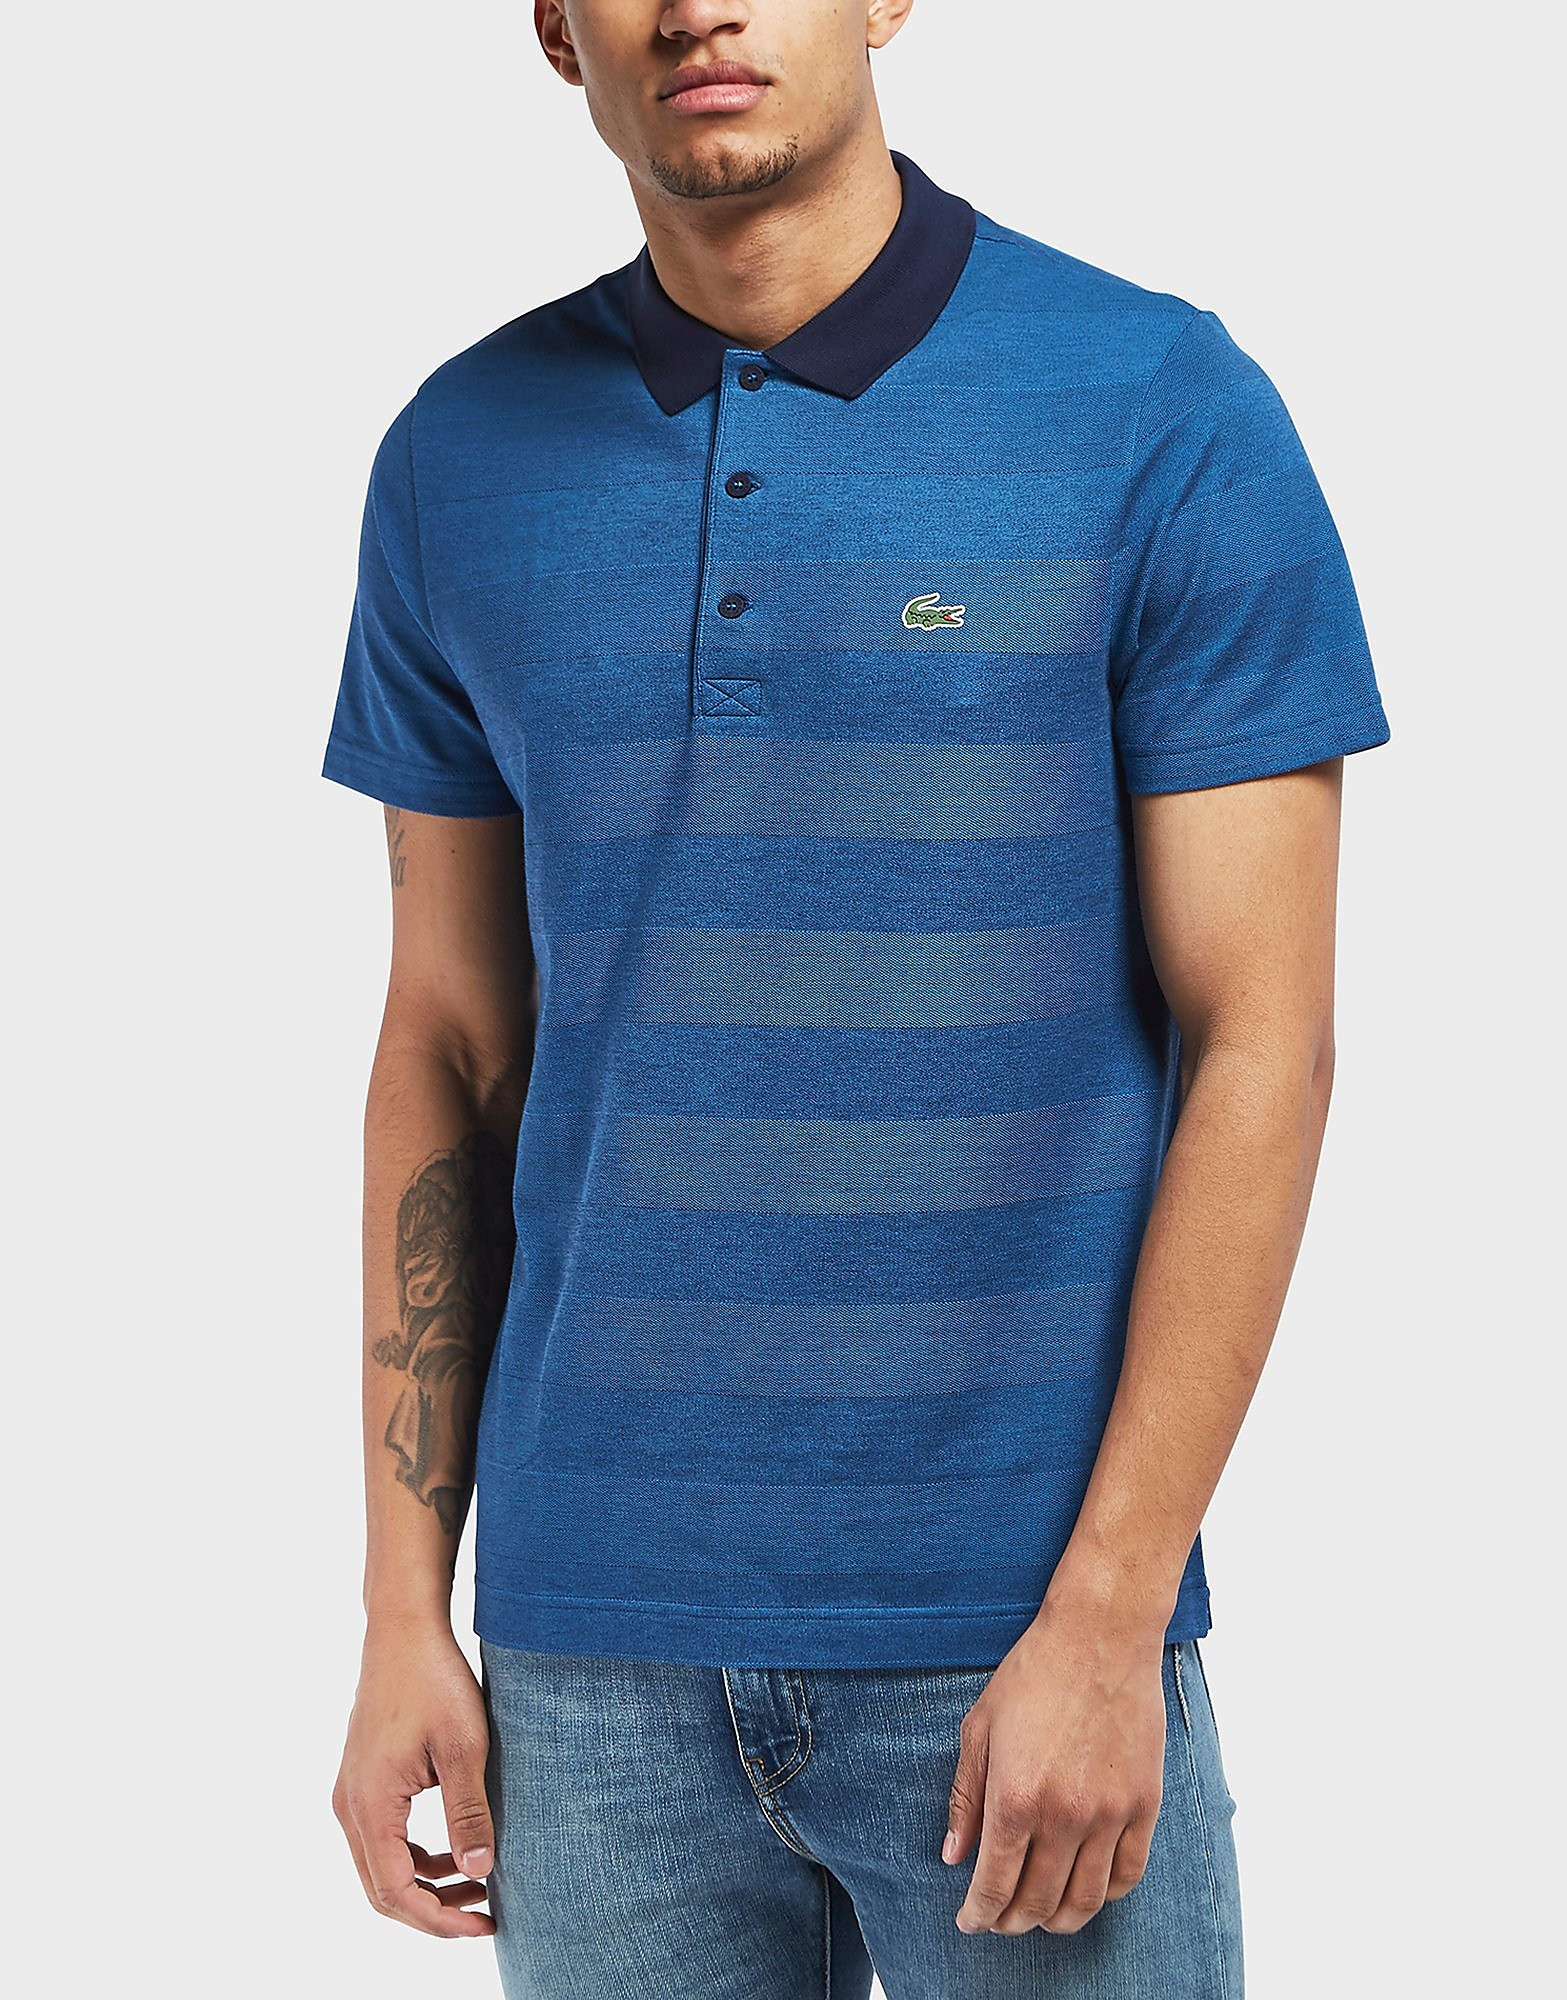 Lacoste Beye Stripe Short Sleeve Polo Shirt